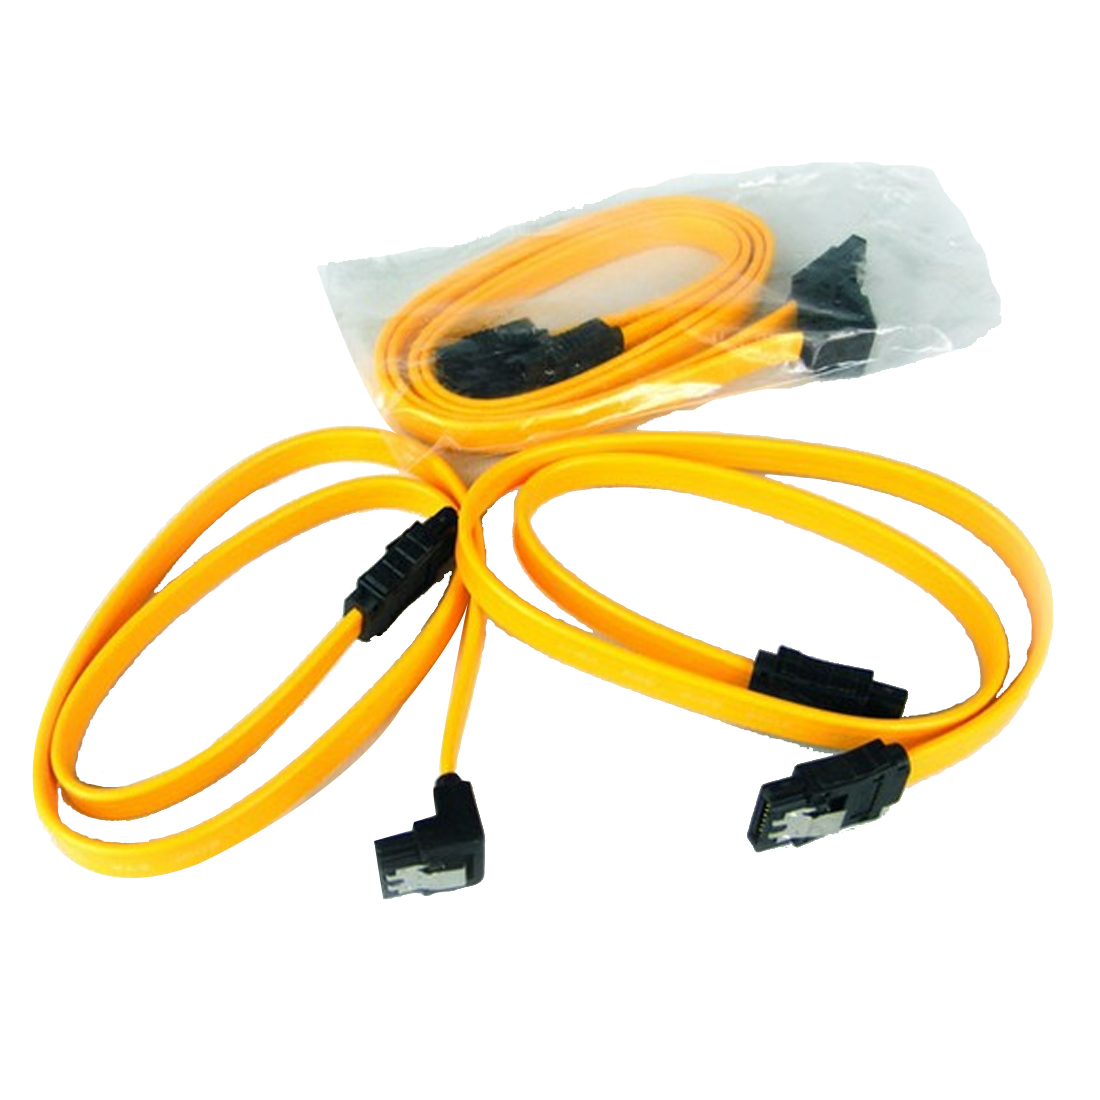 NOYOKERE New 40cm Serial ATA SATA 3 RAID Data HDD Hard Drive Disk Signal Cables Yellow Straight High Speed SATA Data Cable 1PC 2pcs high quality hdd ssd sata3 0 iii 6gb 50cm straight cables right angle cable serial ata hard disk data line soft beautiful